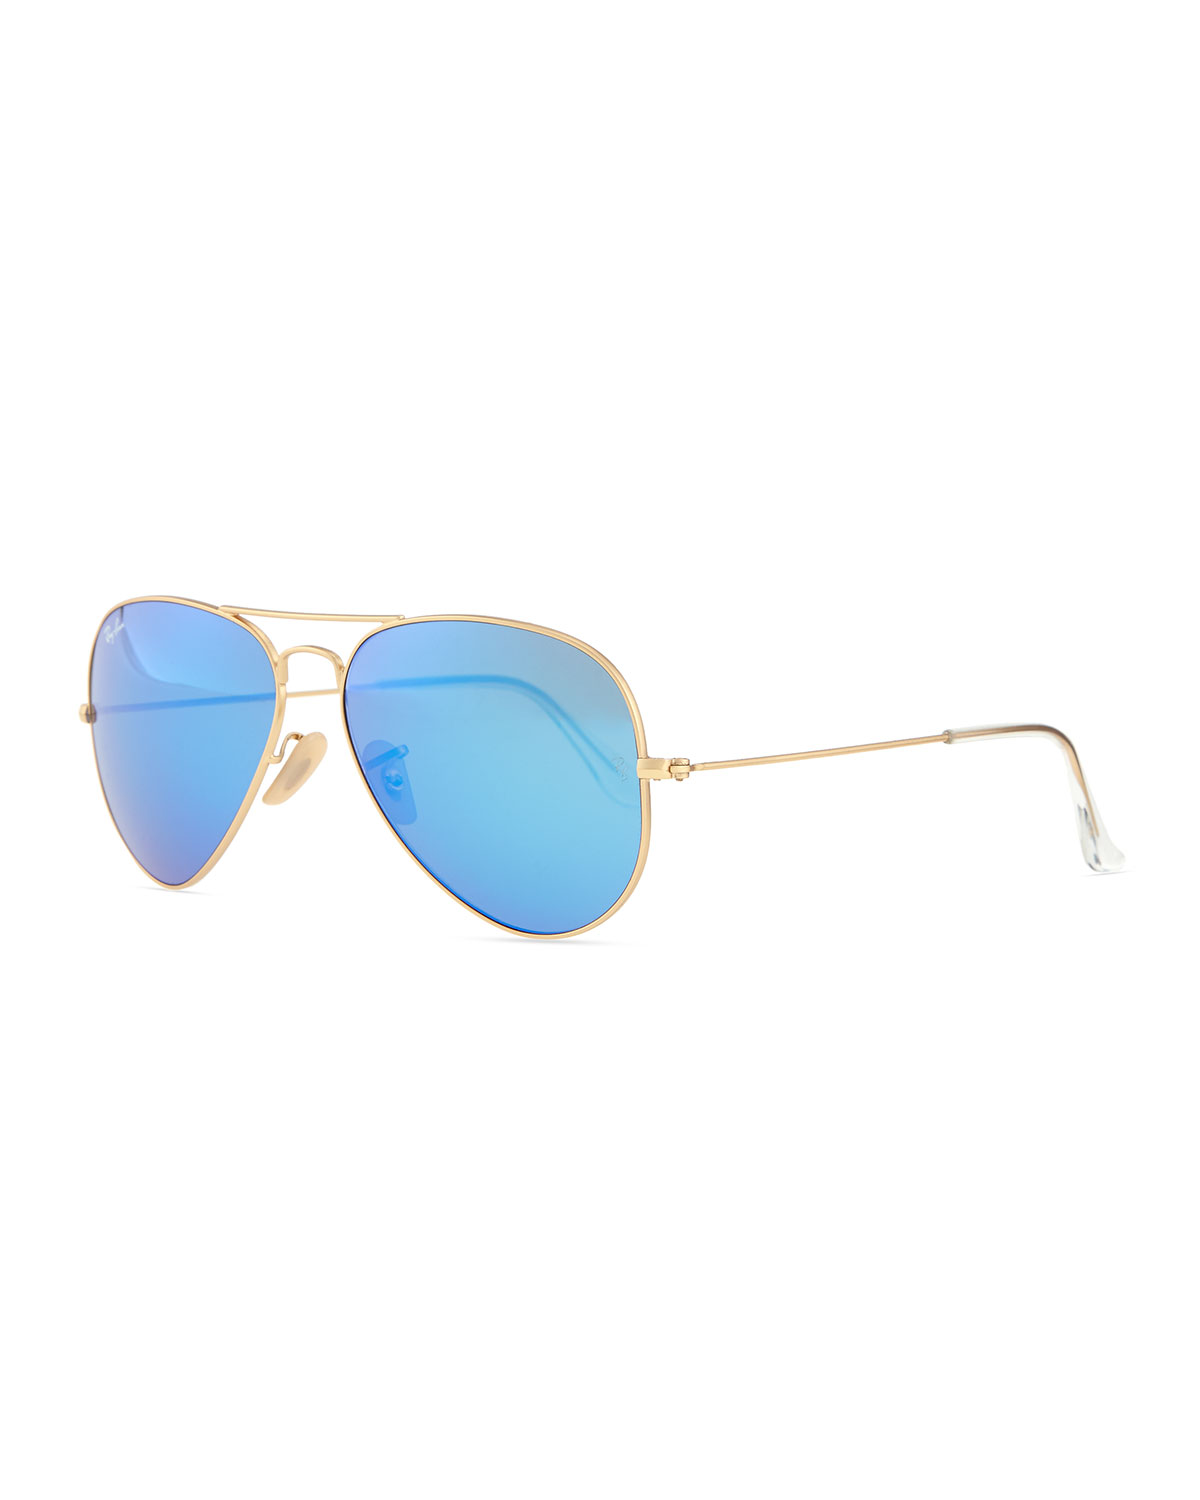 Ray-Ban Aviator Sunglasses with Flash Lenses 5dc00bbdd40